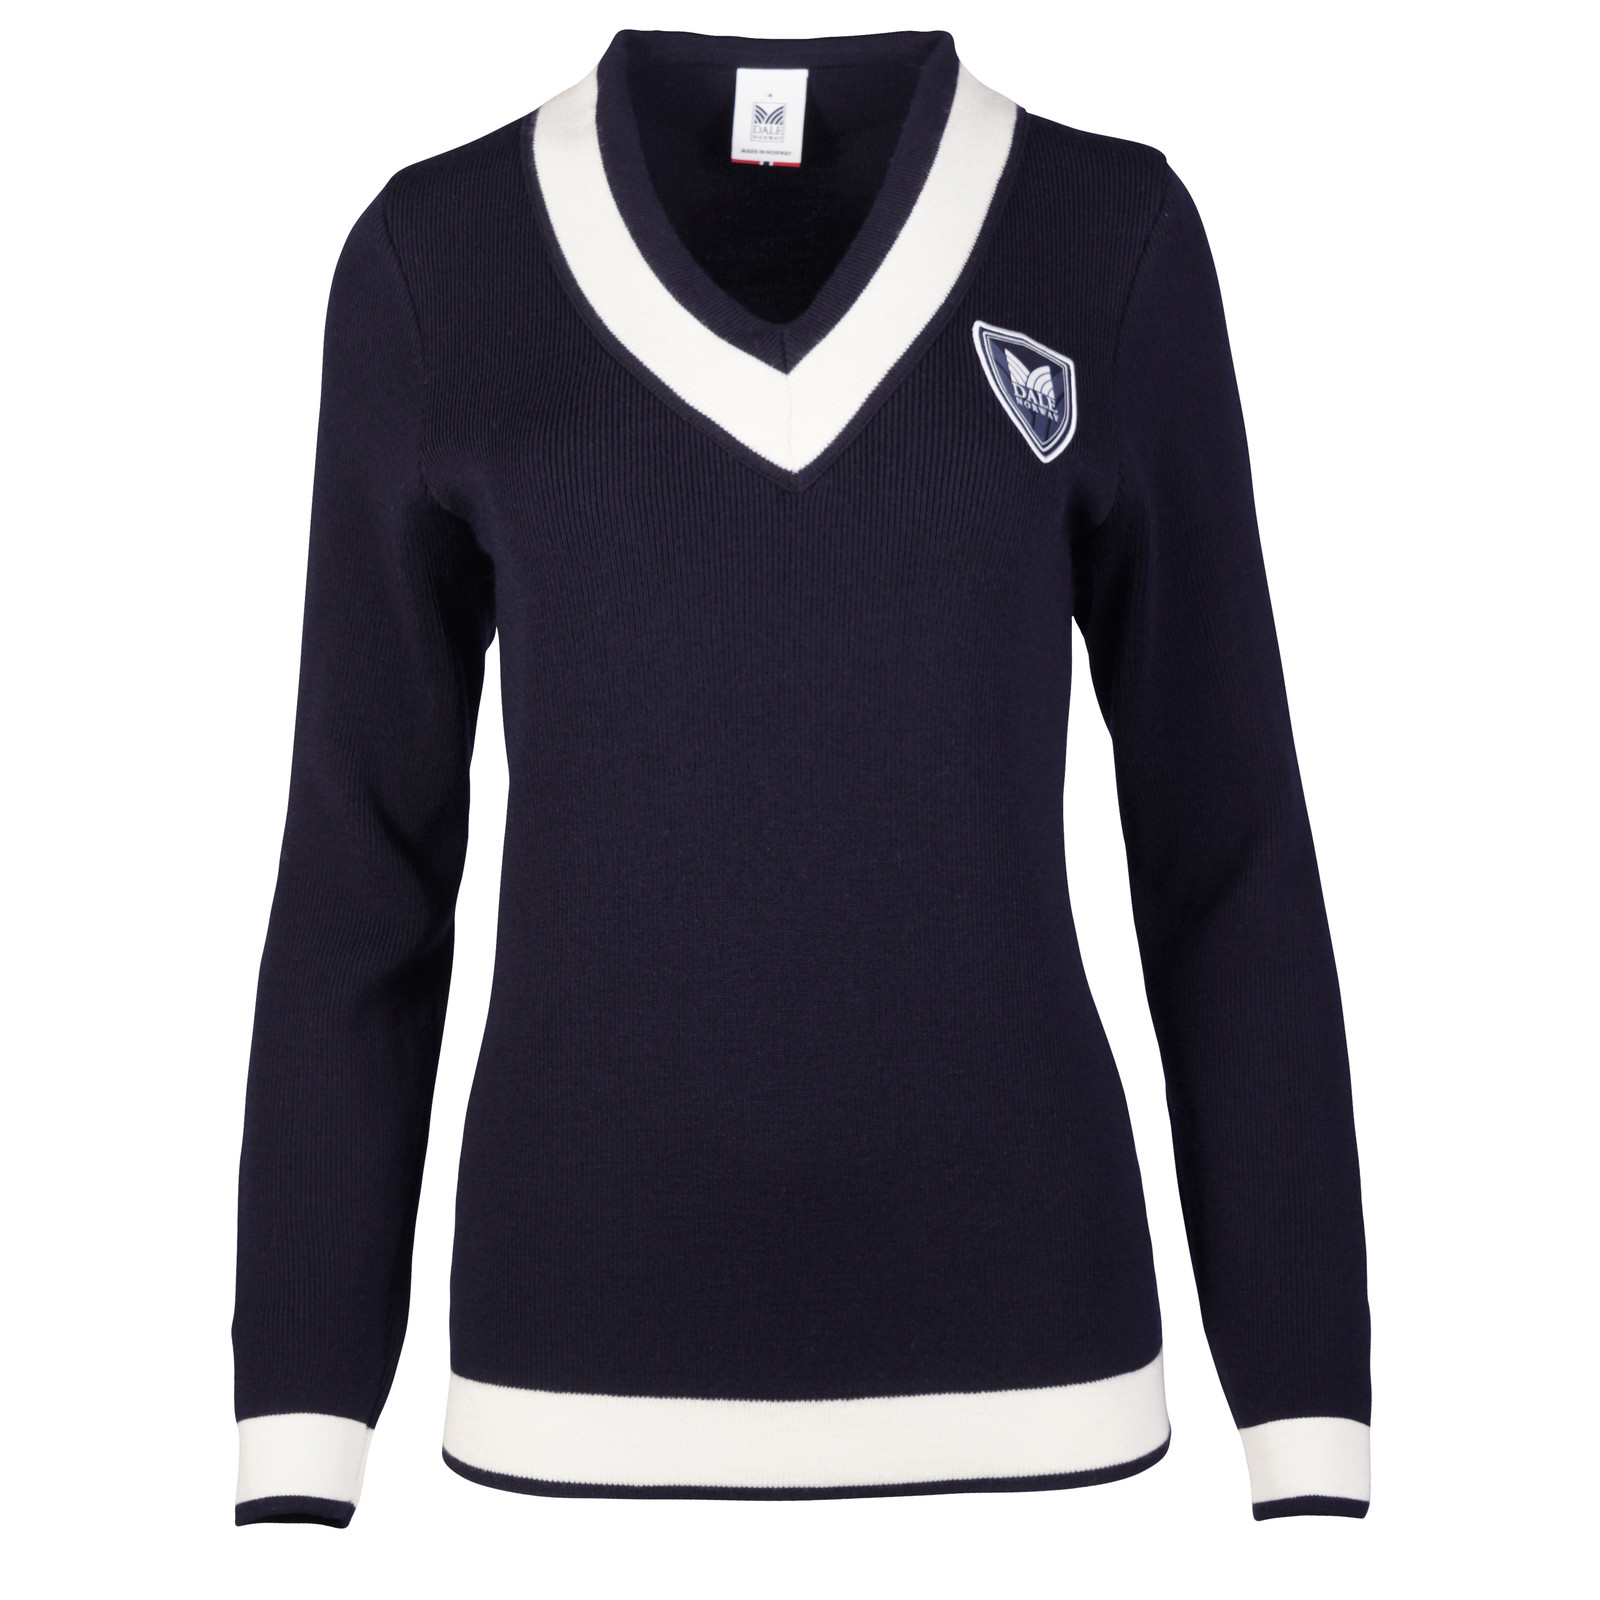 Dale of Norway Morgedal Sweater, Womens - Navy/Off White, 94021-C